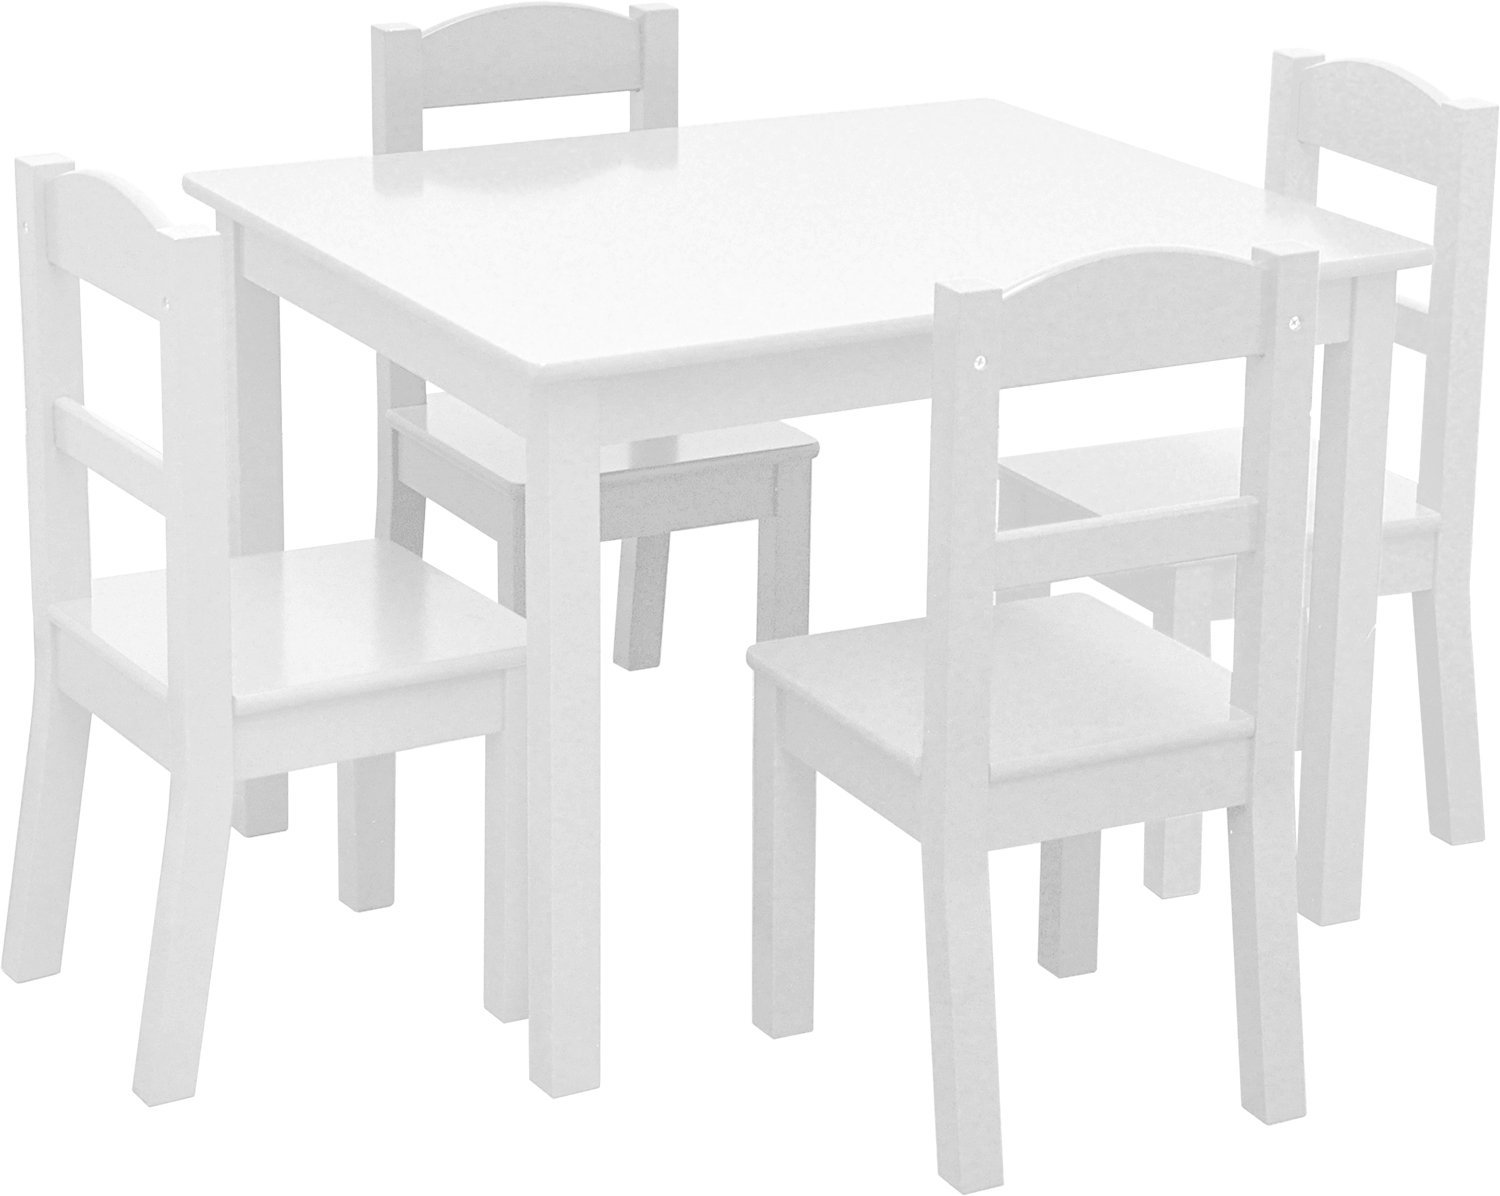 Phenomenal Cheap Kids Table And Chair Set White Find Kids Table And Machost Co Dining Chair Design Ideas Machostcouk